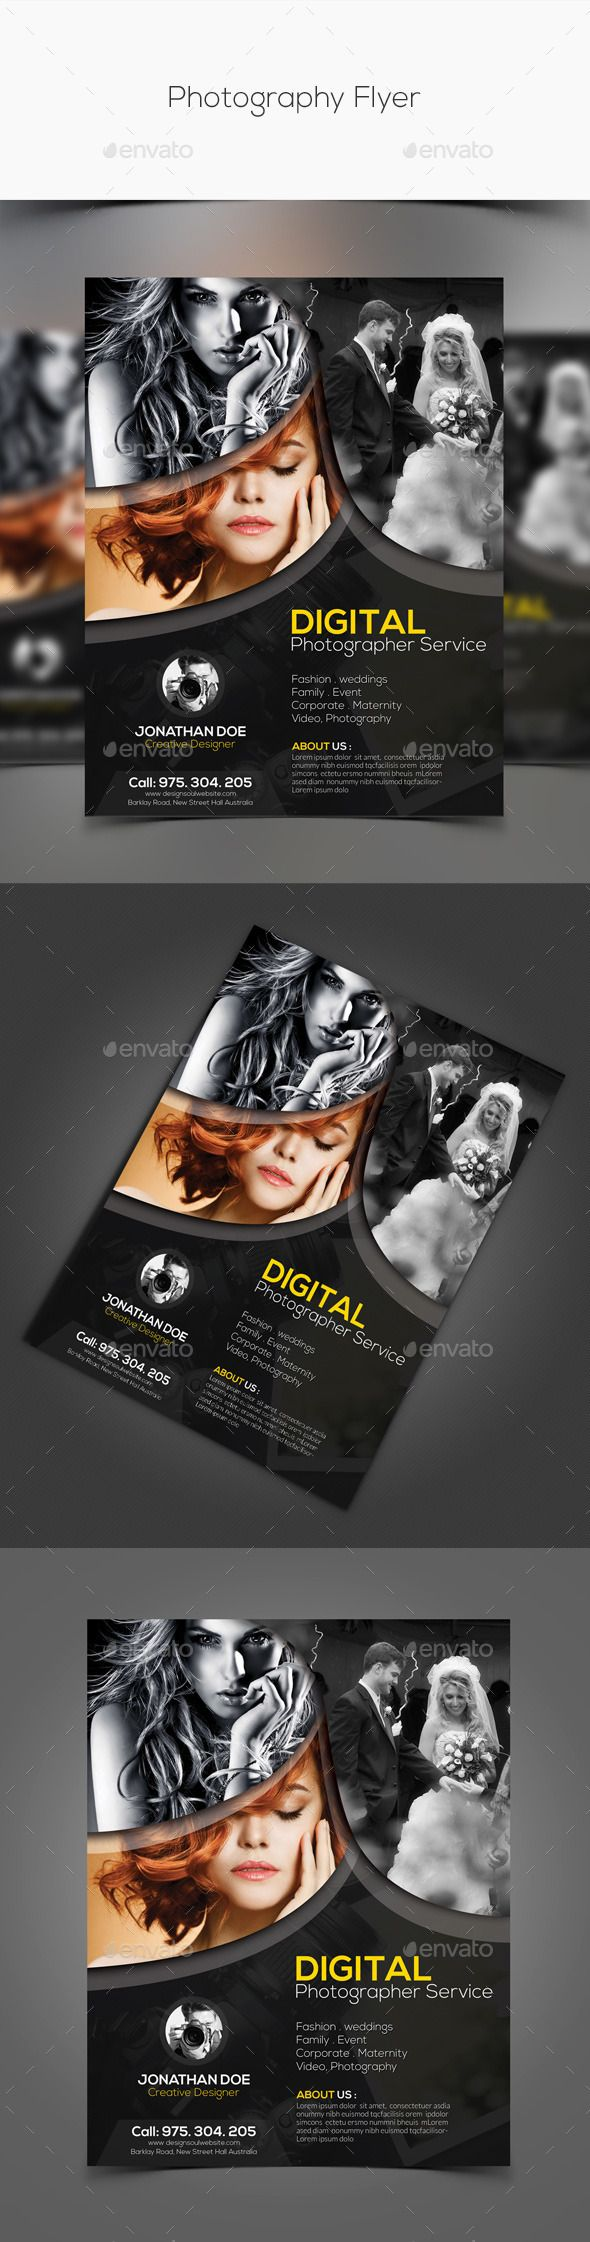 Photography Flyer — Photoshop PSD #event #magazine • Available here → https://graphicriver.net/item/photography-flyer/11267733?ref=pxcr